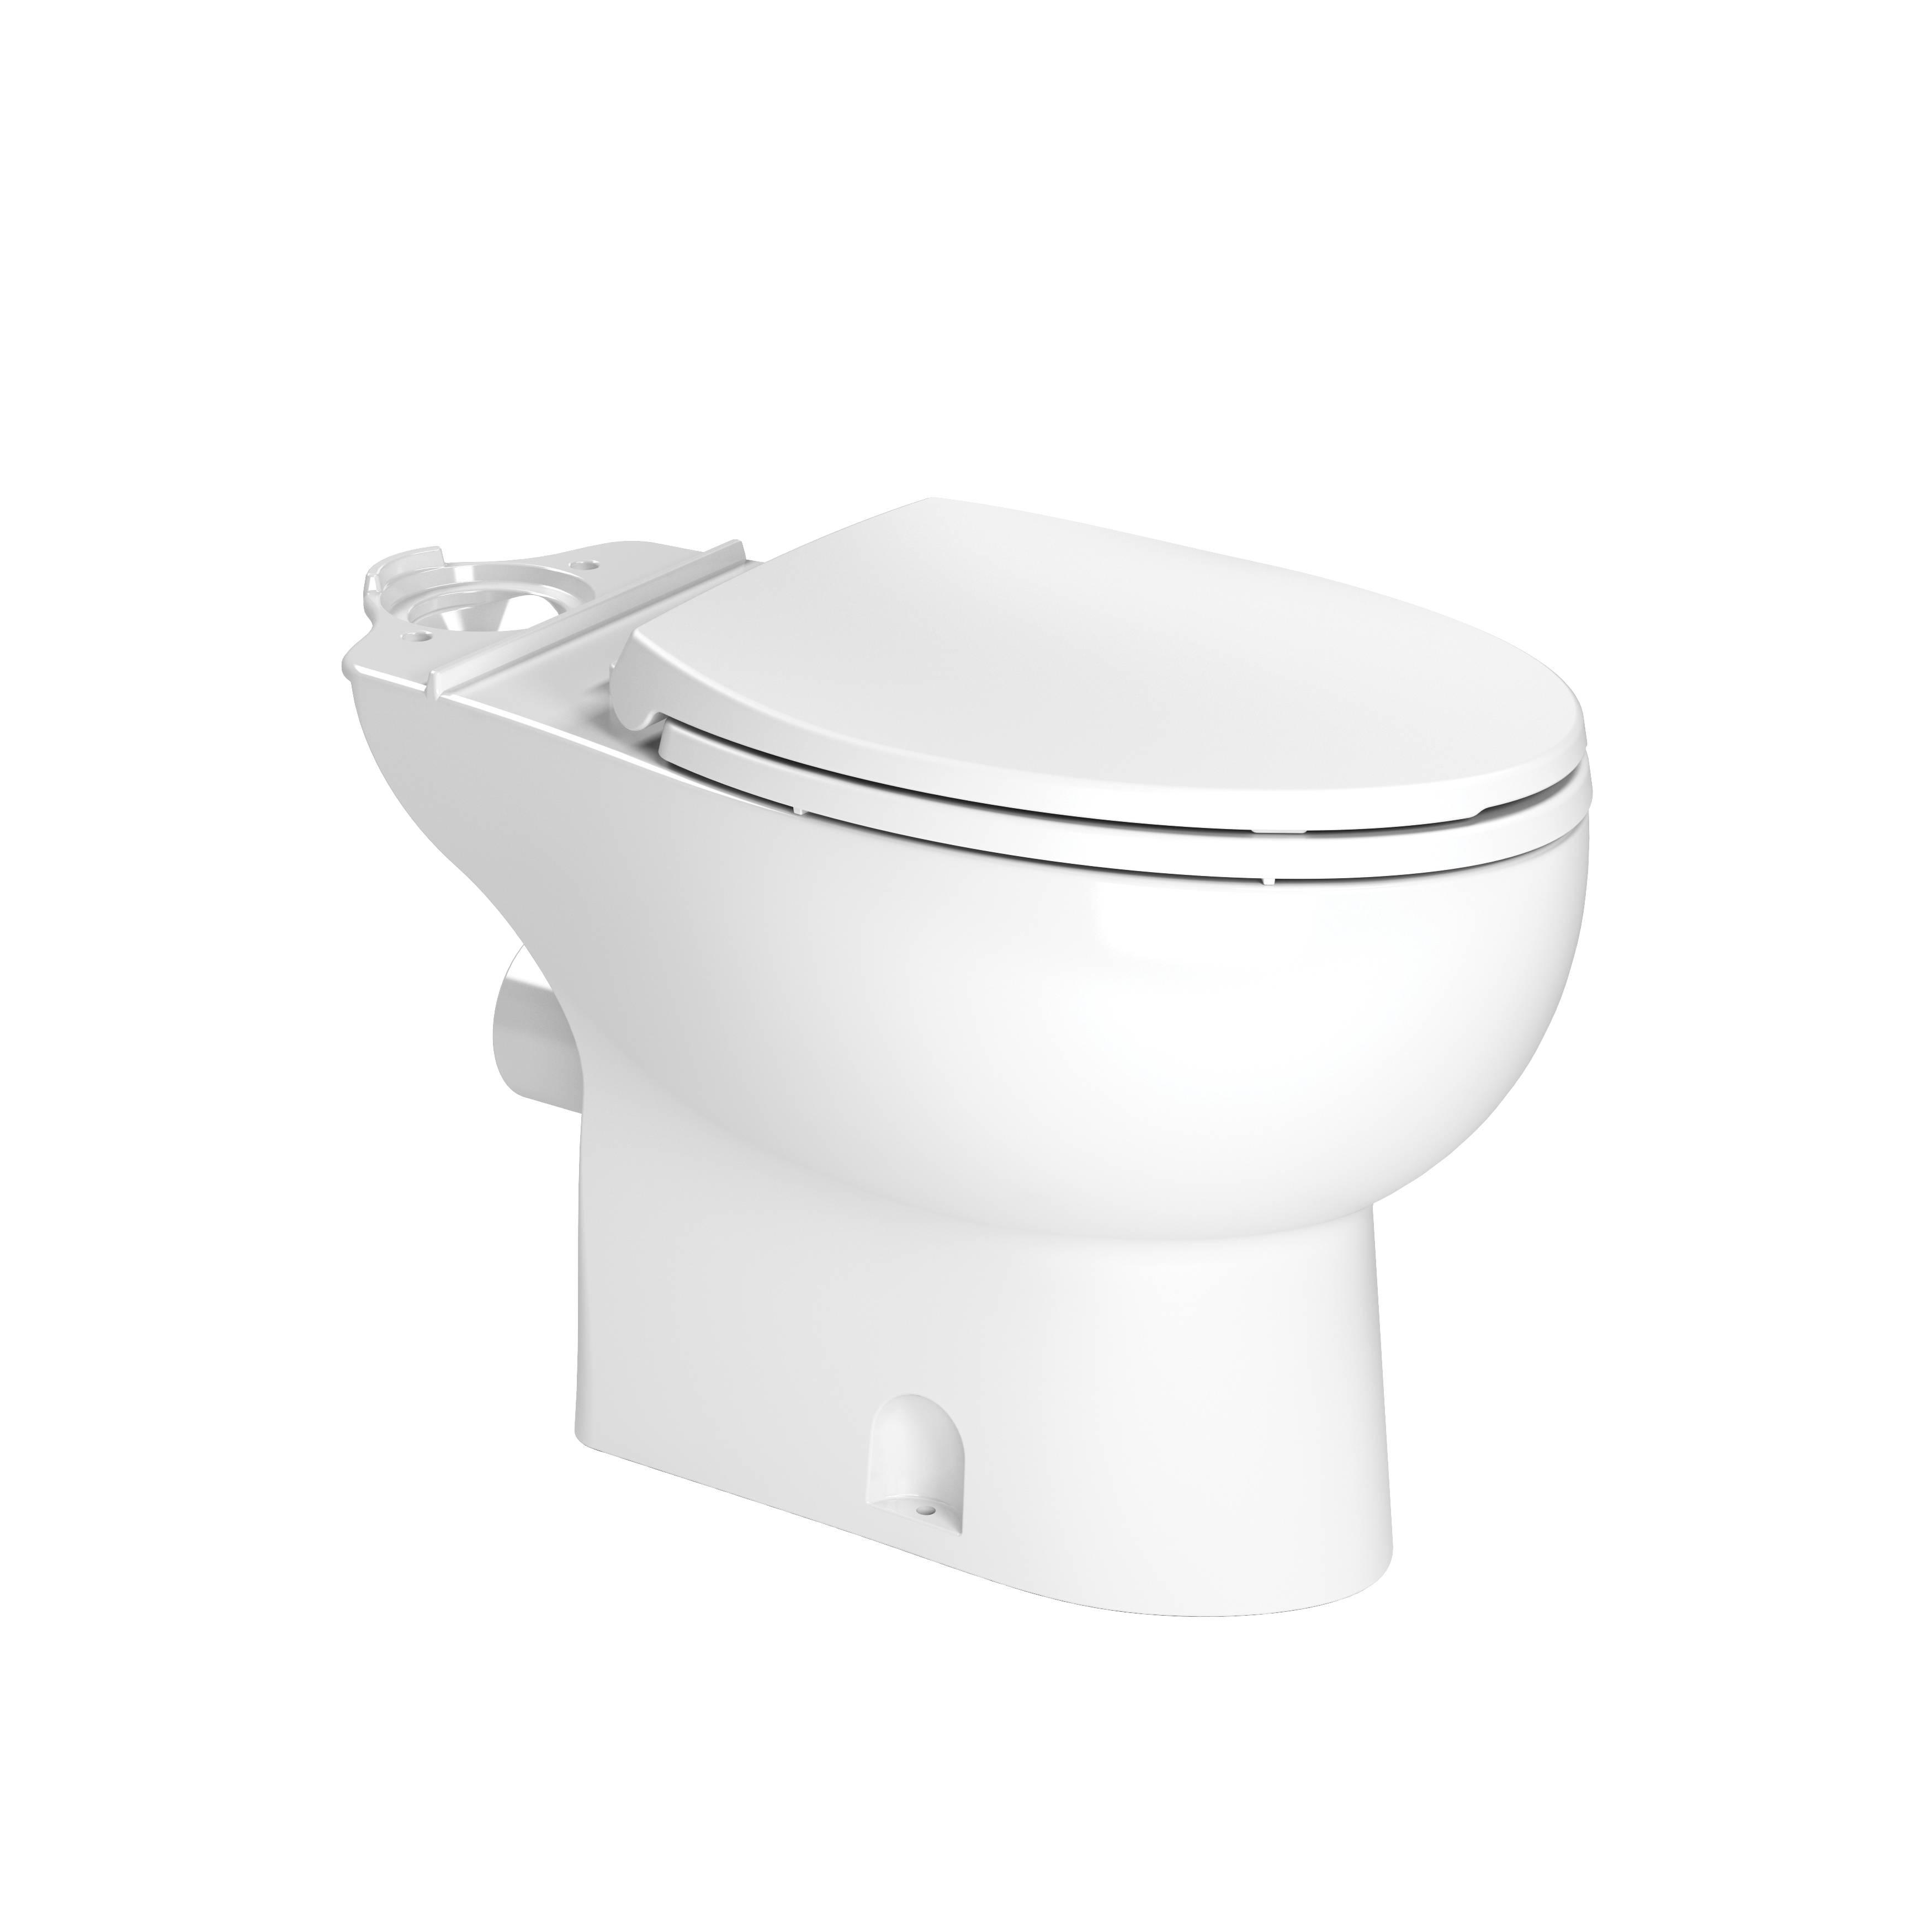 Saniflo® 087 Toilet Bowl, White, Elongated Front Shape, 16-3/4 in H Rim, 3 in Trapway